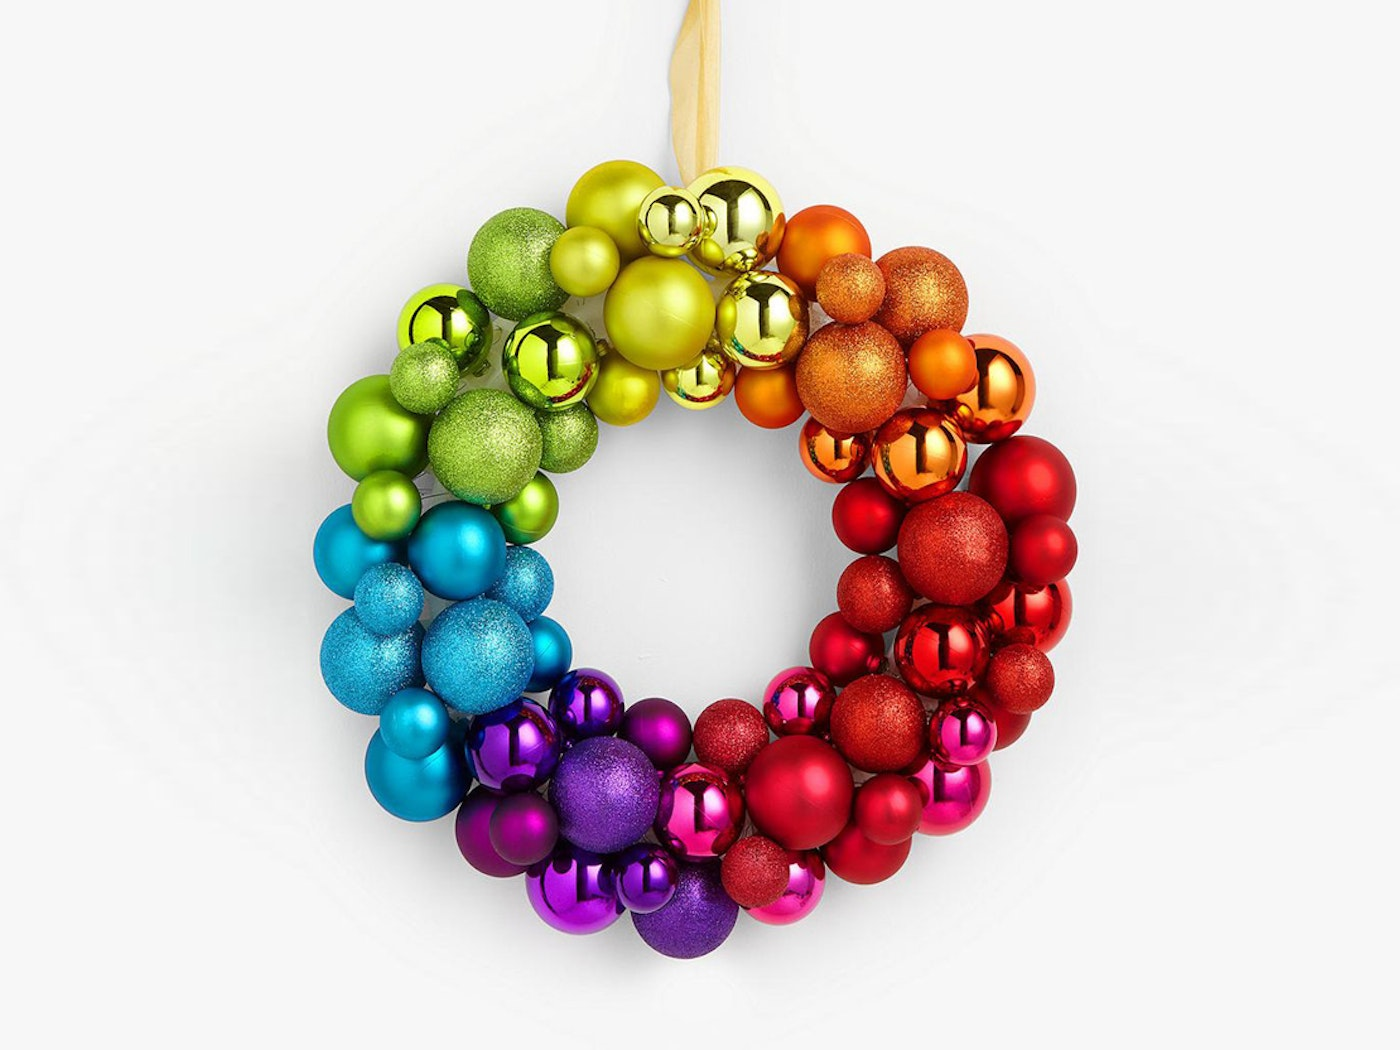 Rainbow Bauble Wreath from John Lewis £25